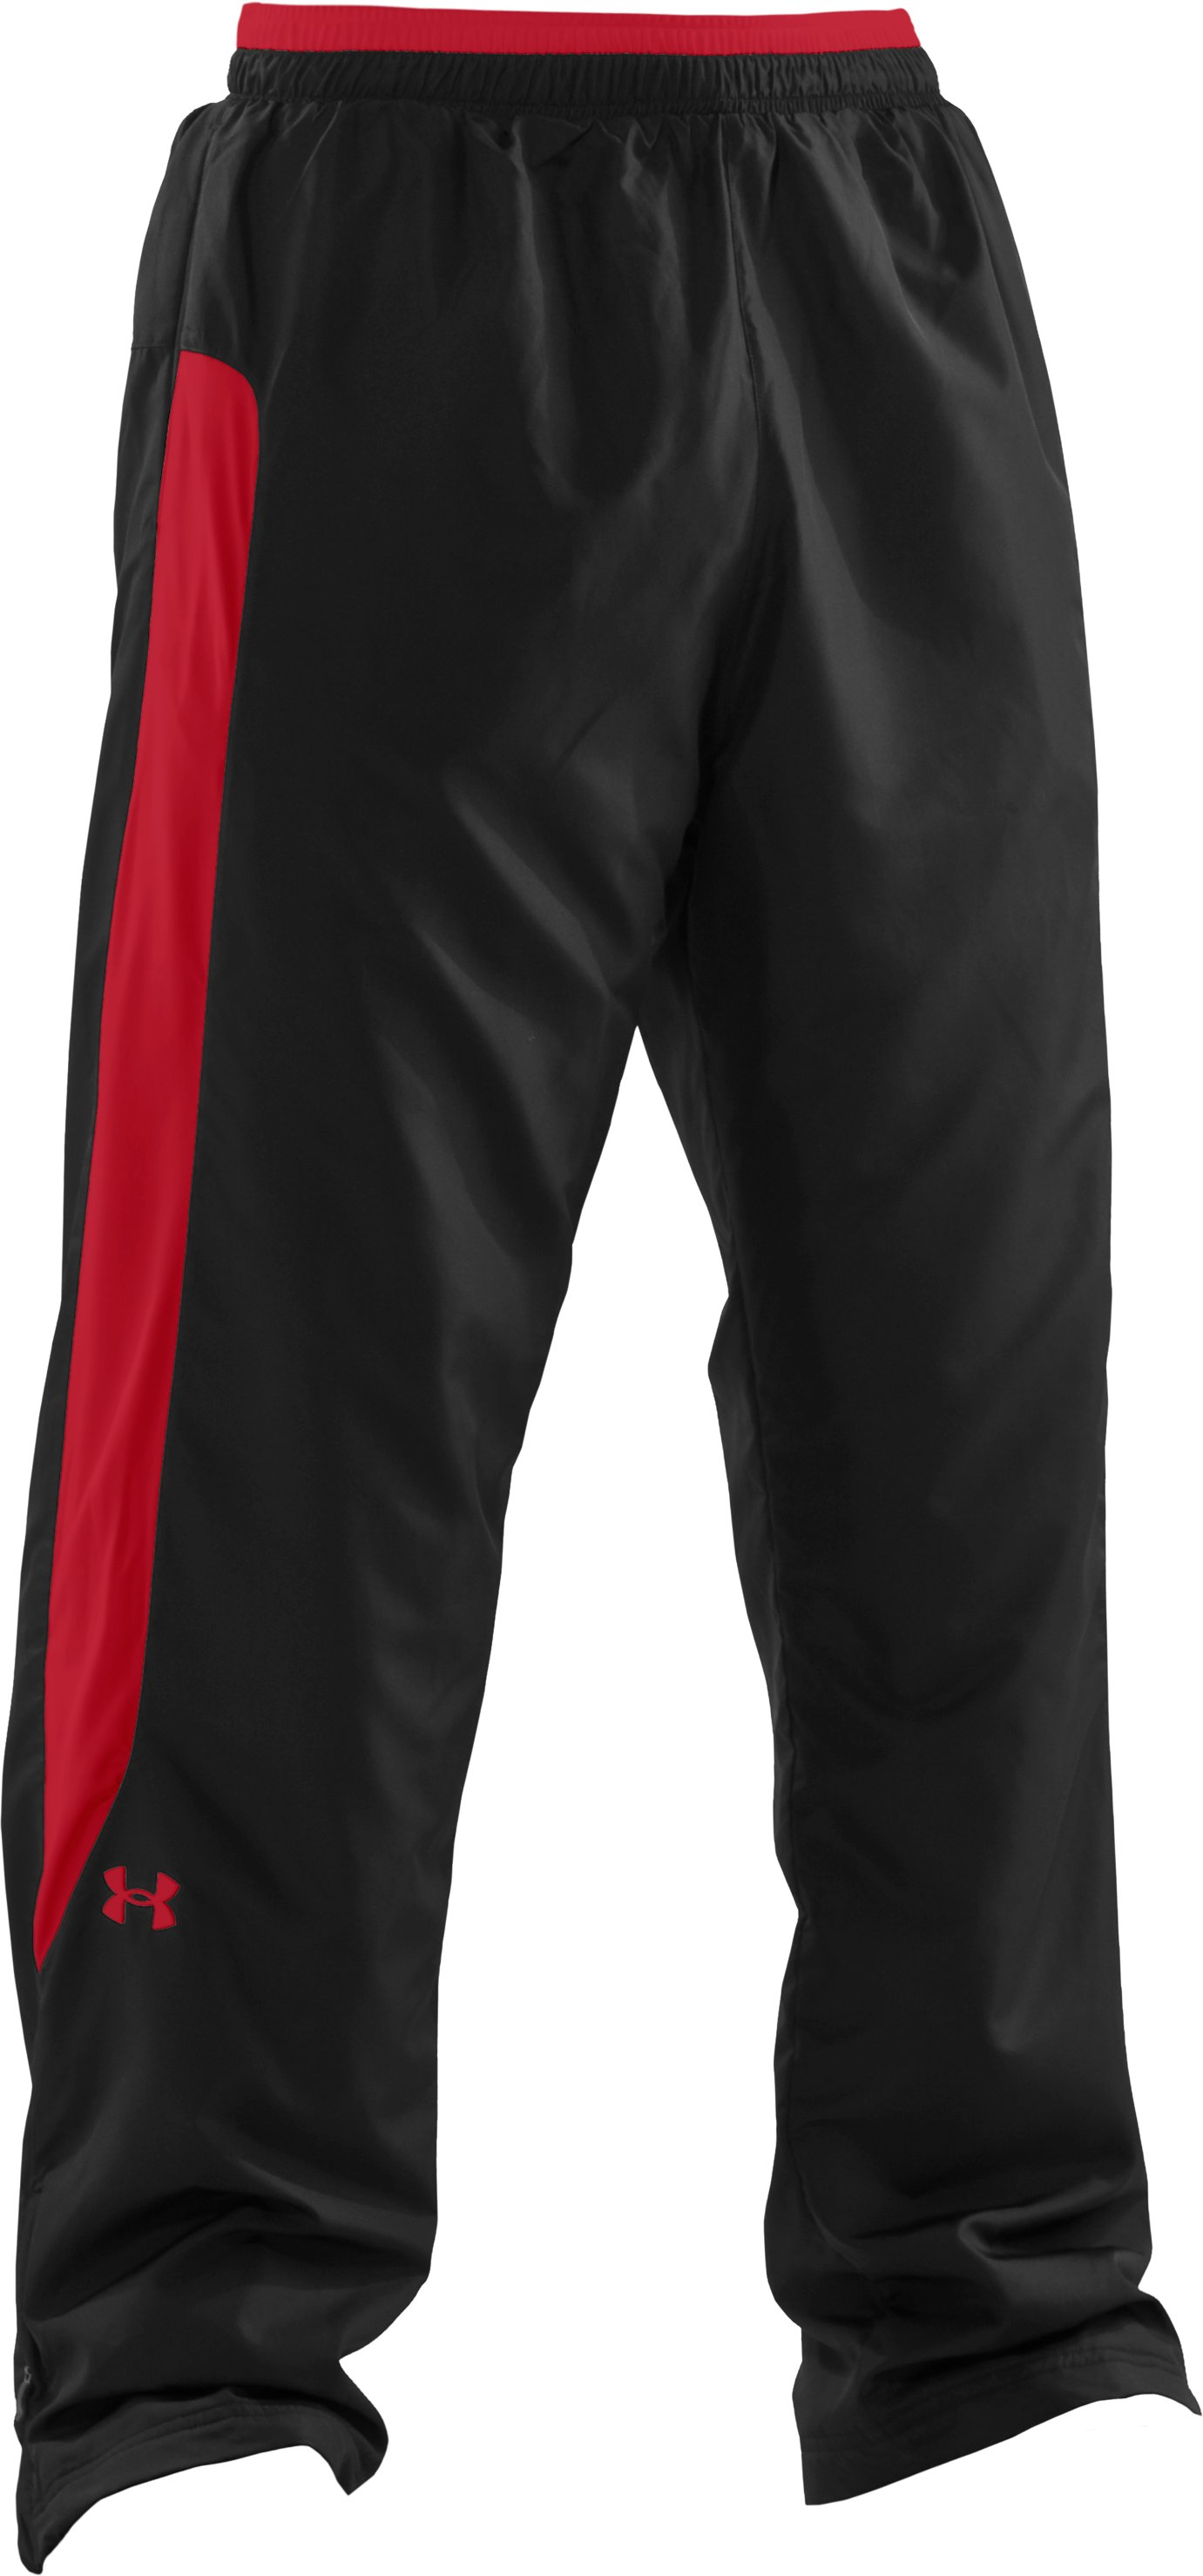 Men's Canuck Hockey Warm-Up Pants, Black